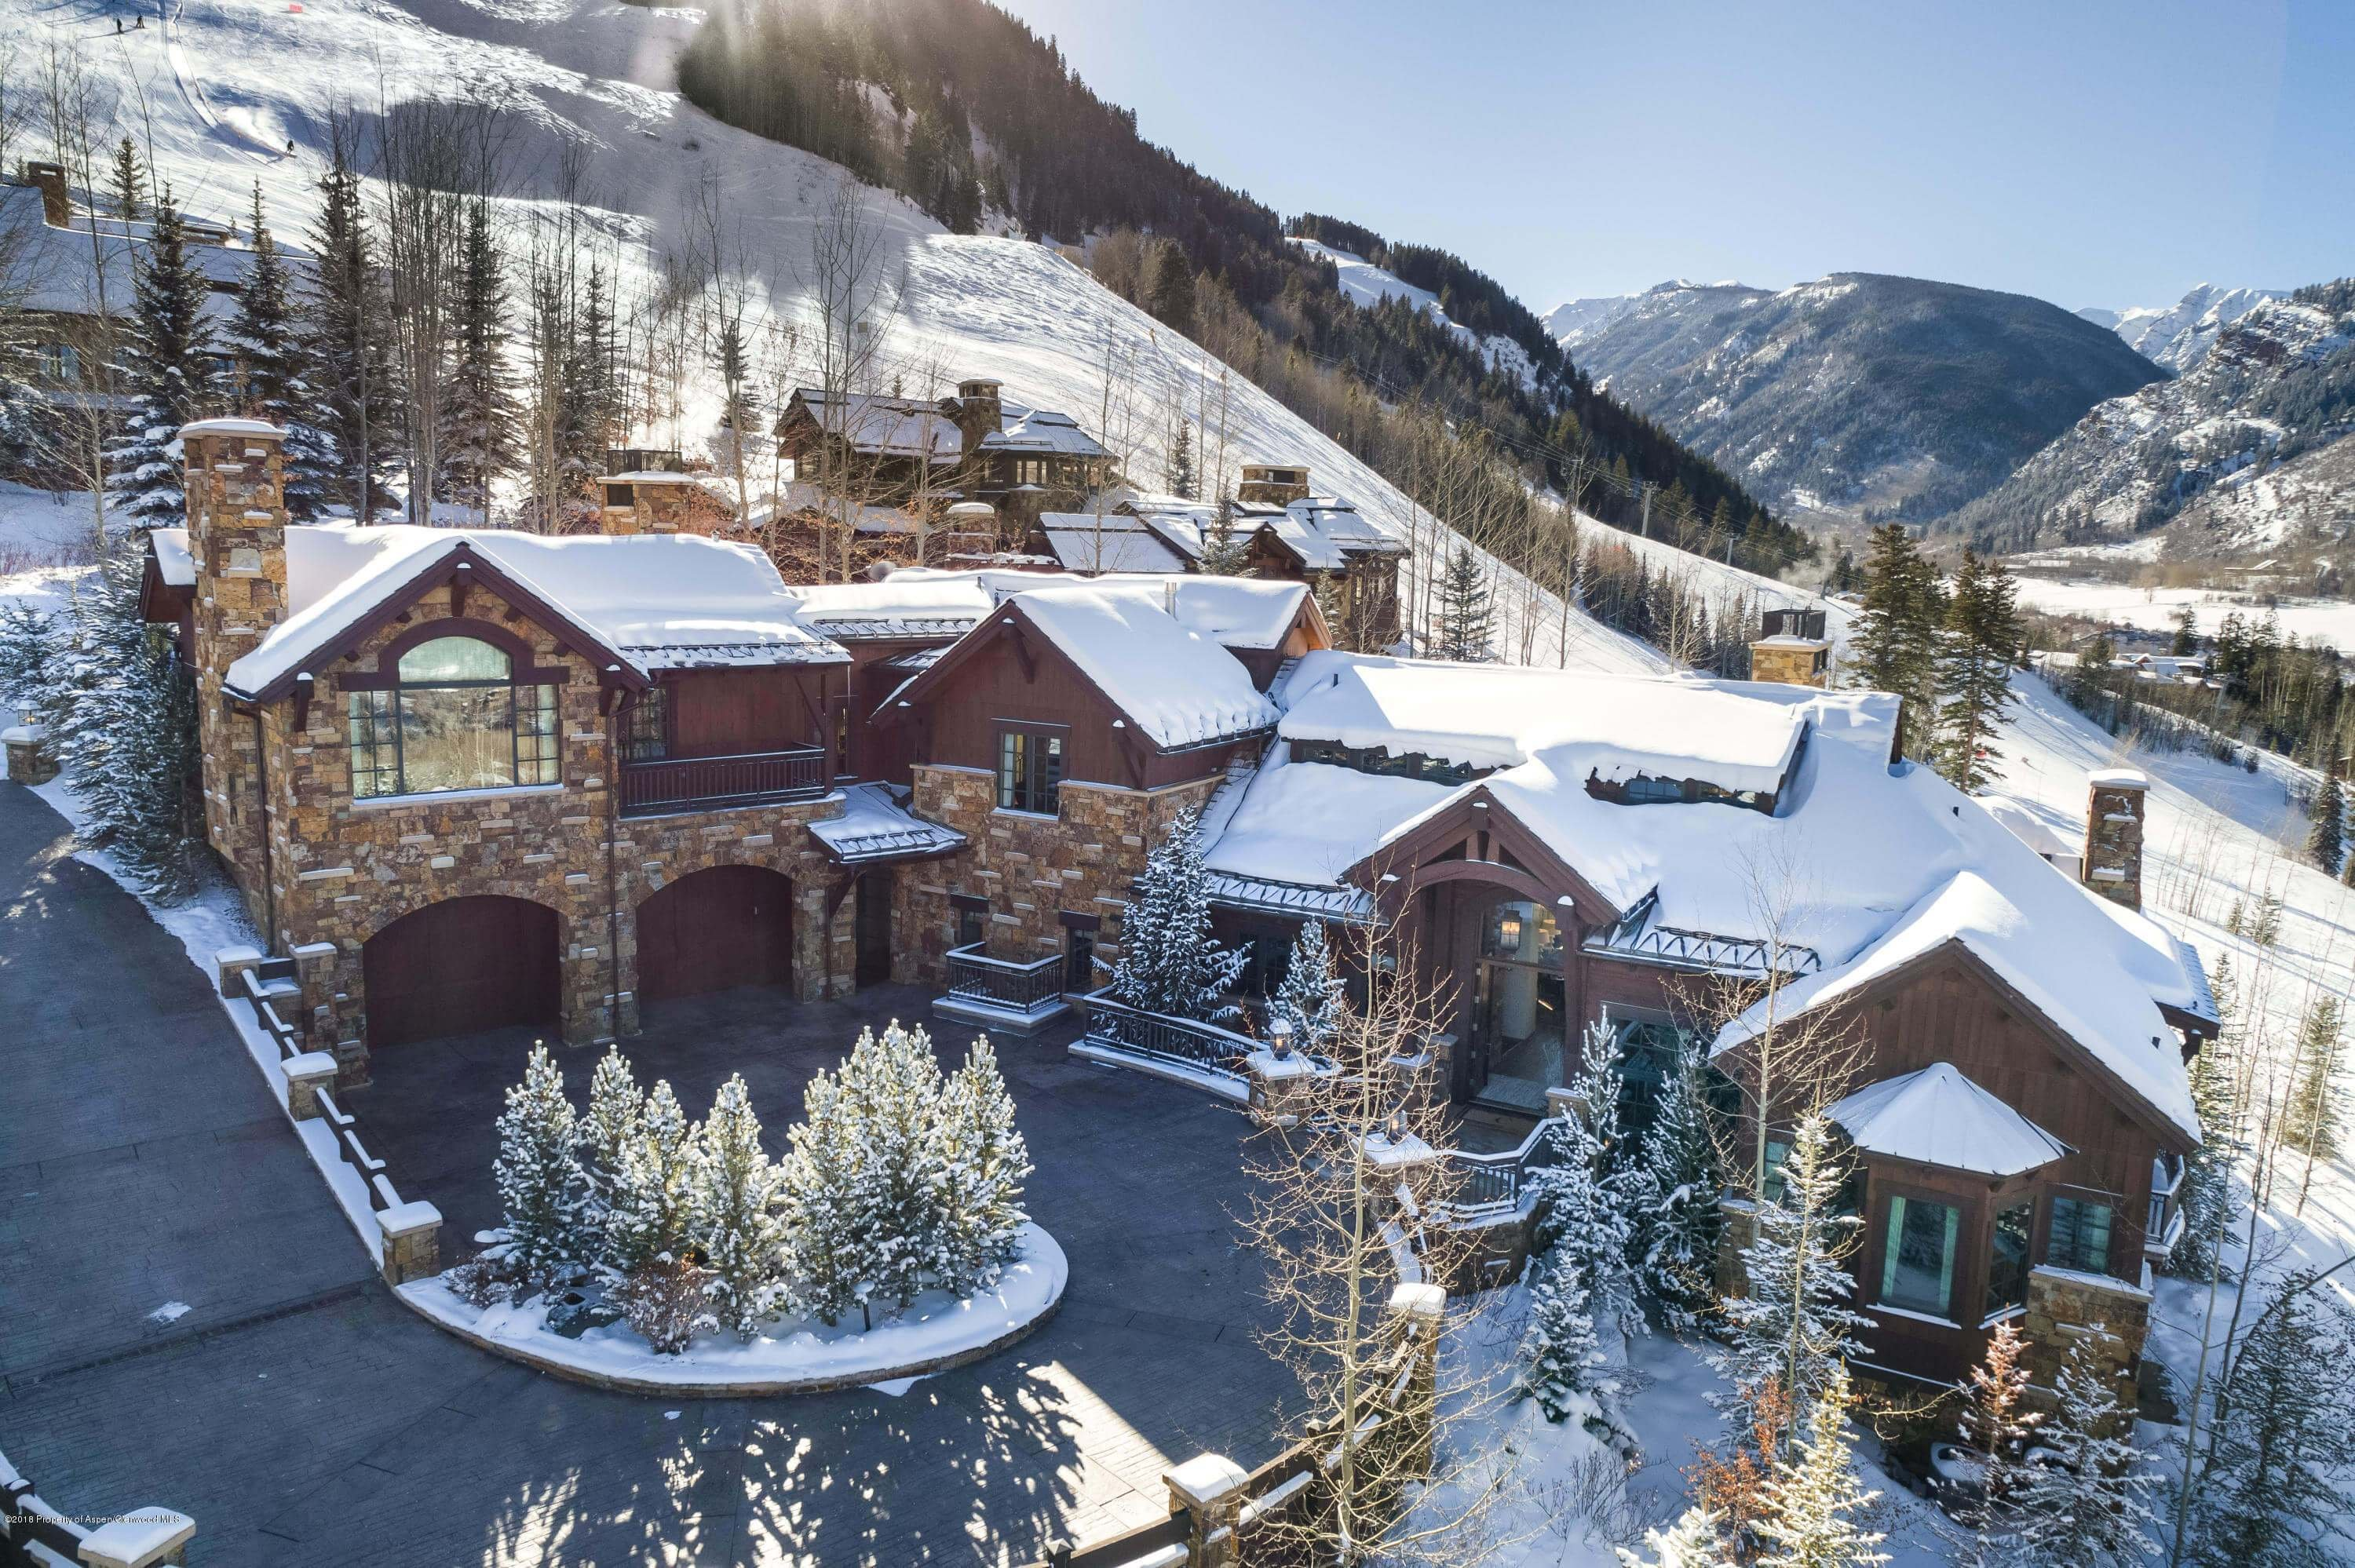 Aspen Highlands Ski-In Out Home at 465 Thunderbowl Ln Sells for Record Highlands Price $17.35M/$1,870 sq ft Furnished Image